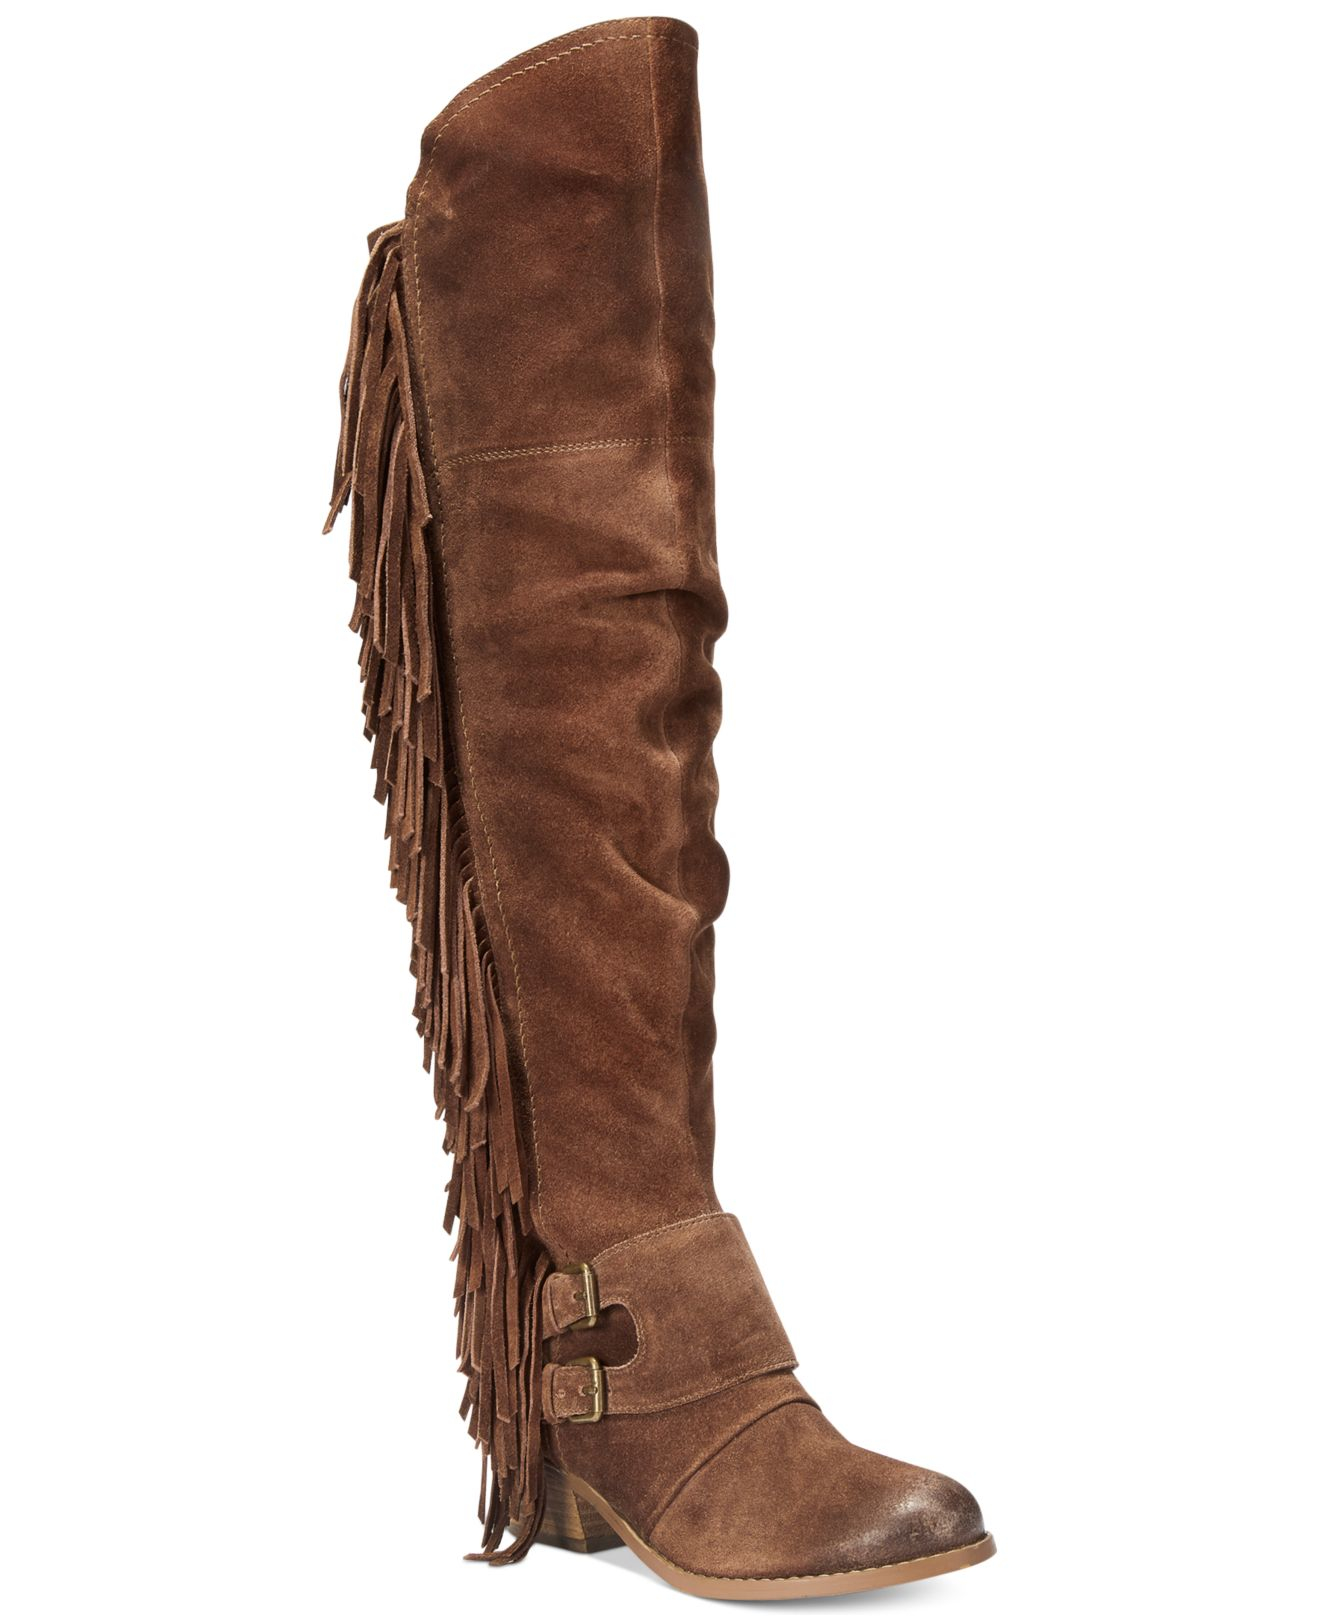 Naughty monkey Frilly Fanta Over-the-knee Fringe Boots in Brown | Lyst